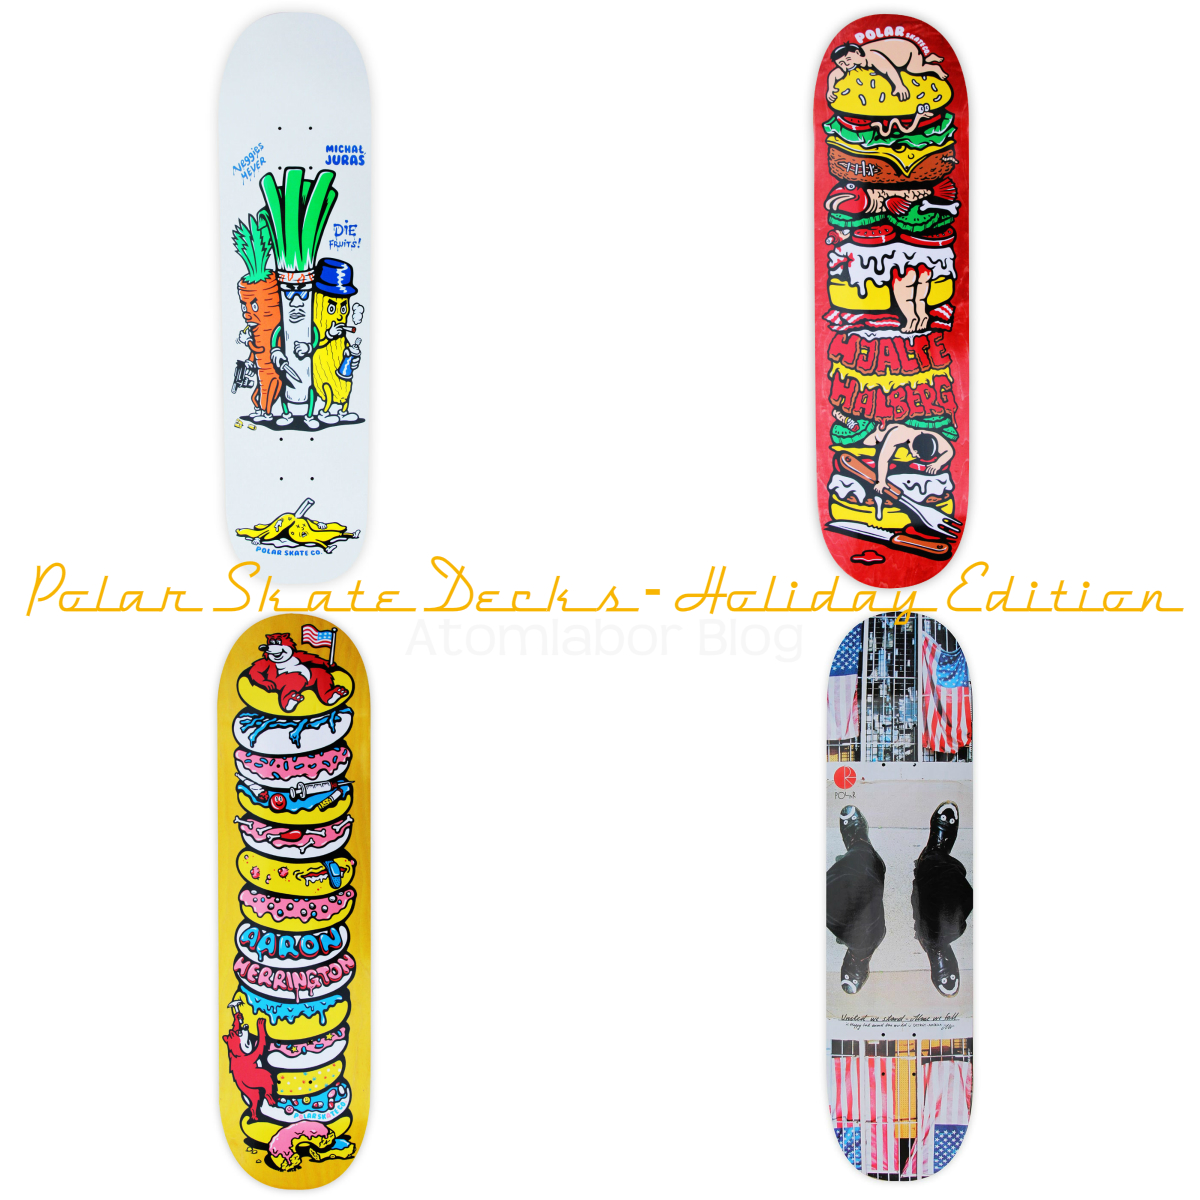 Polar Skate Decks Serie - Winter 2014 ( 13 Bilder - 1 Video )